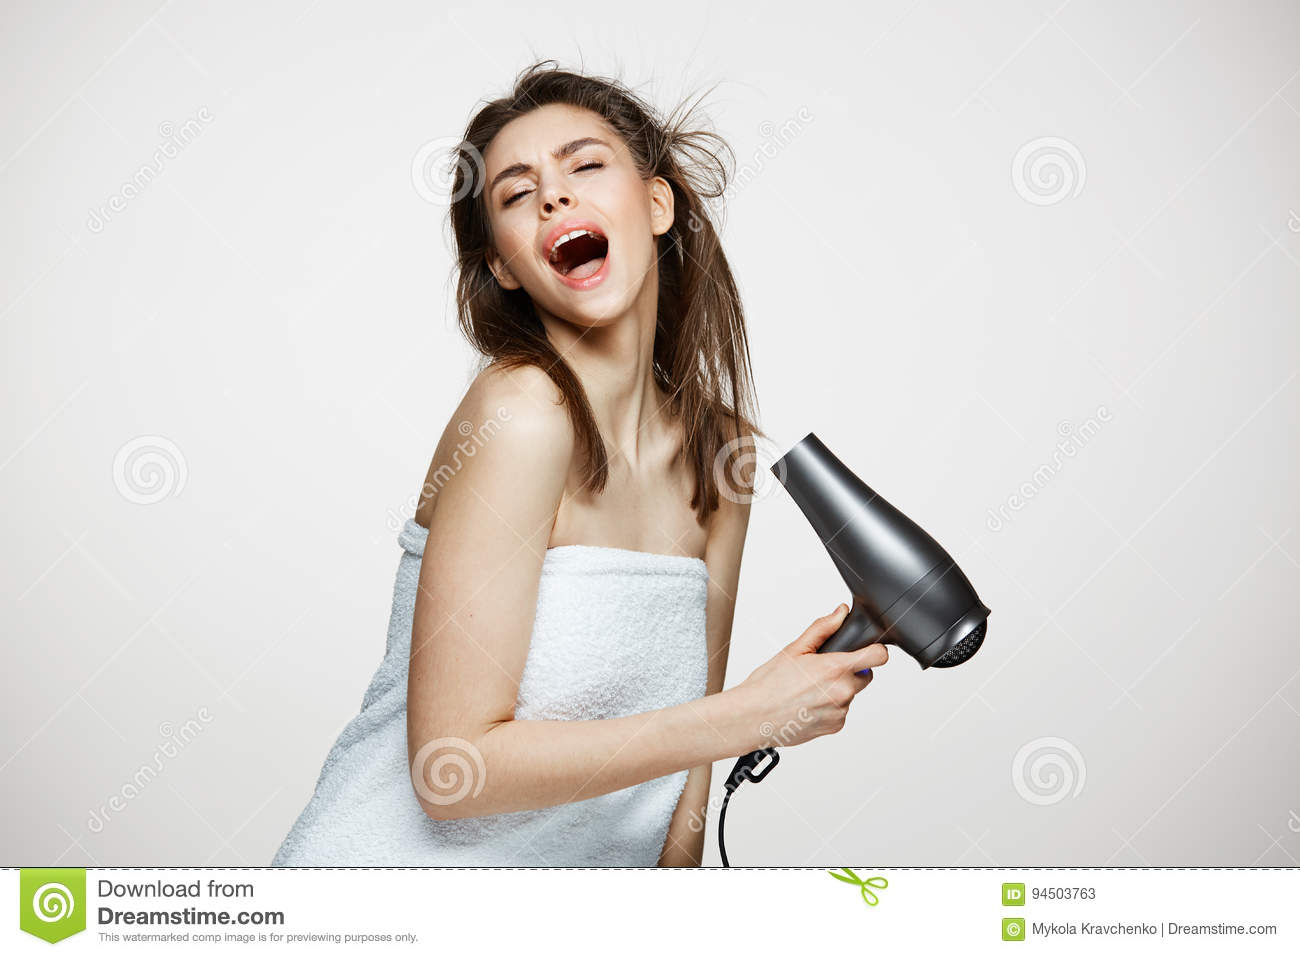 Cheerful beautiful girl in towel smiling laughing singing with hair dryer making funny face over white background